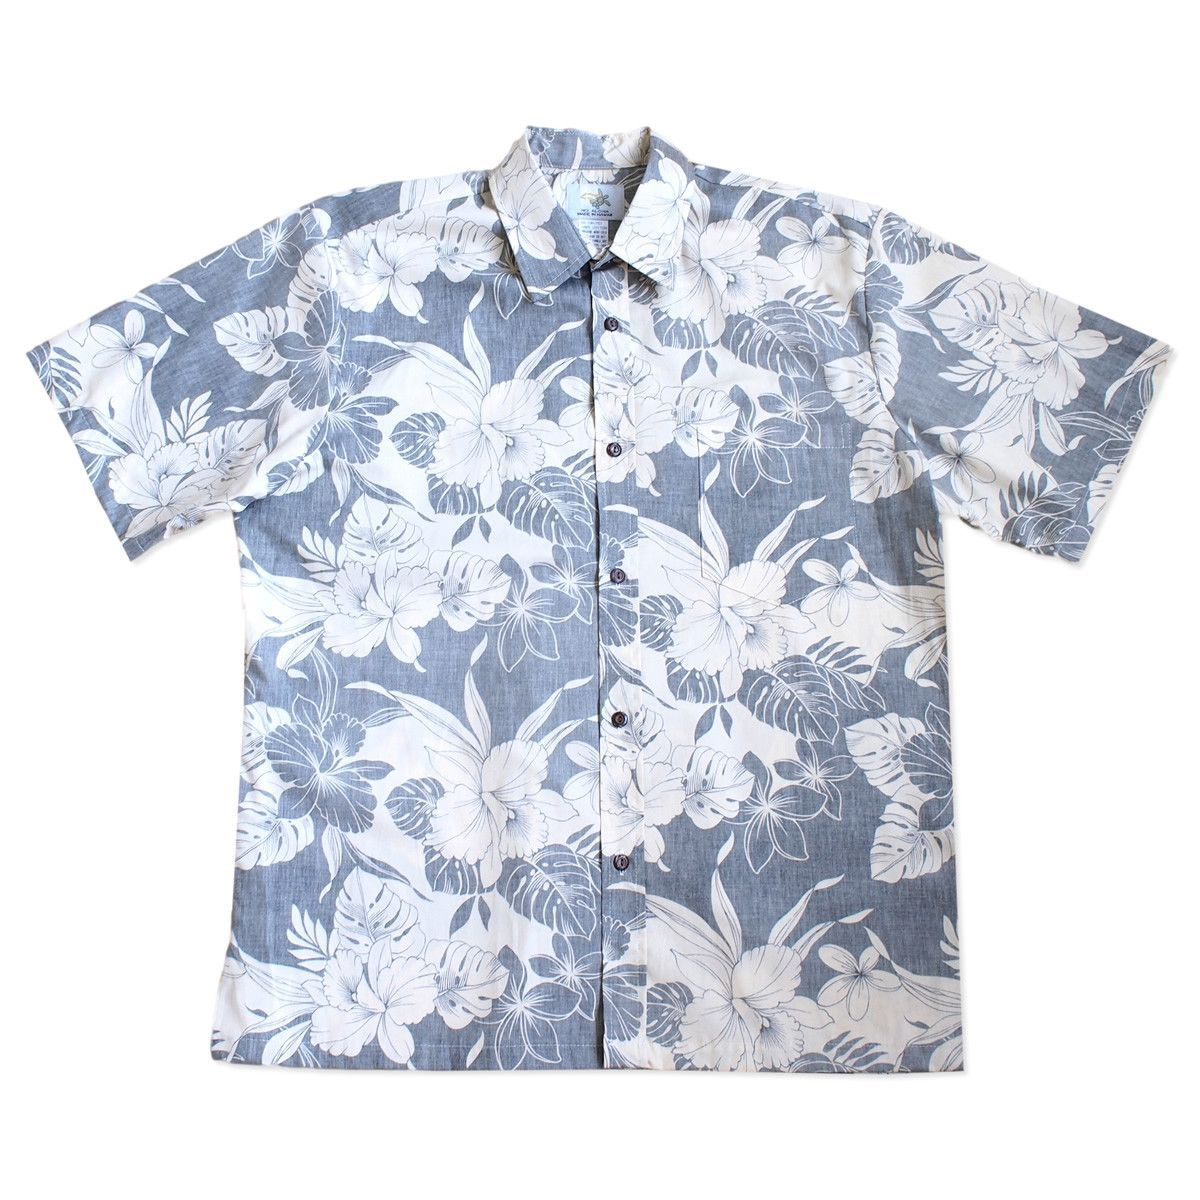 72410df1 Orchid shadow navy reverse print hawaiian cotton shirt in 2019 ...